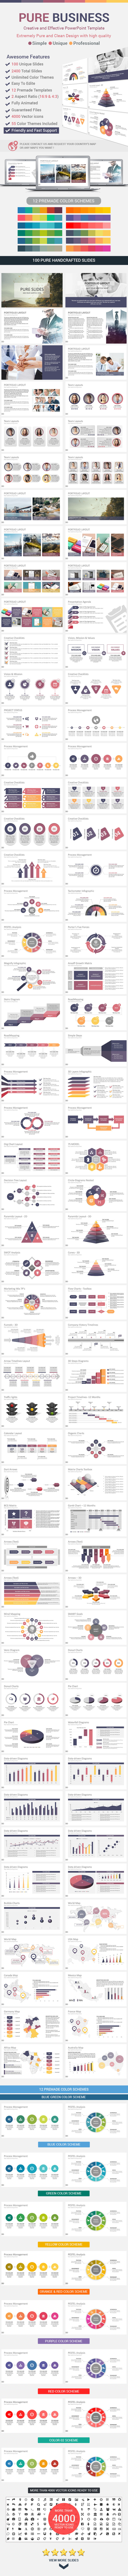 Pure Business PowerPoint Presentation Template